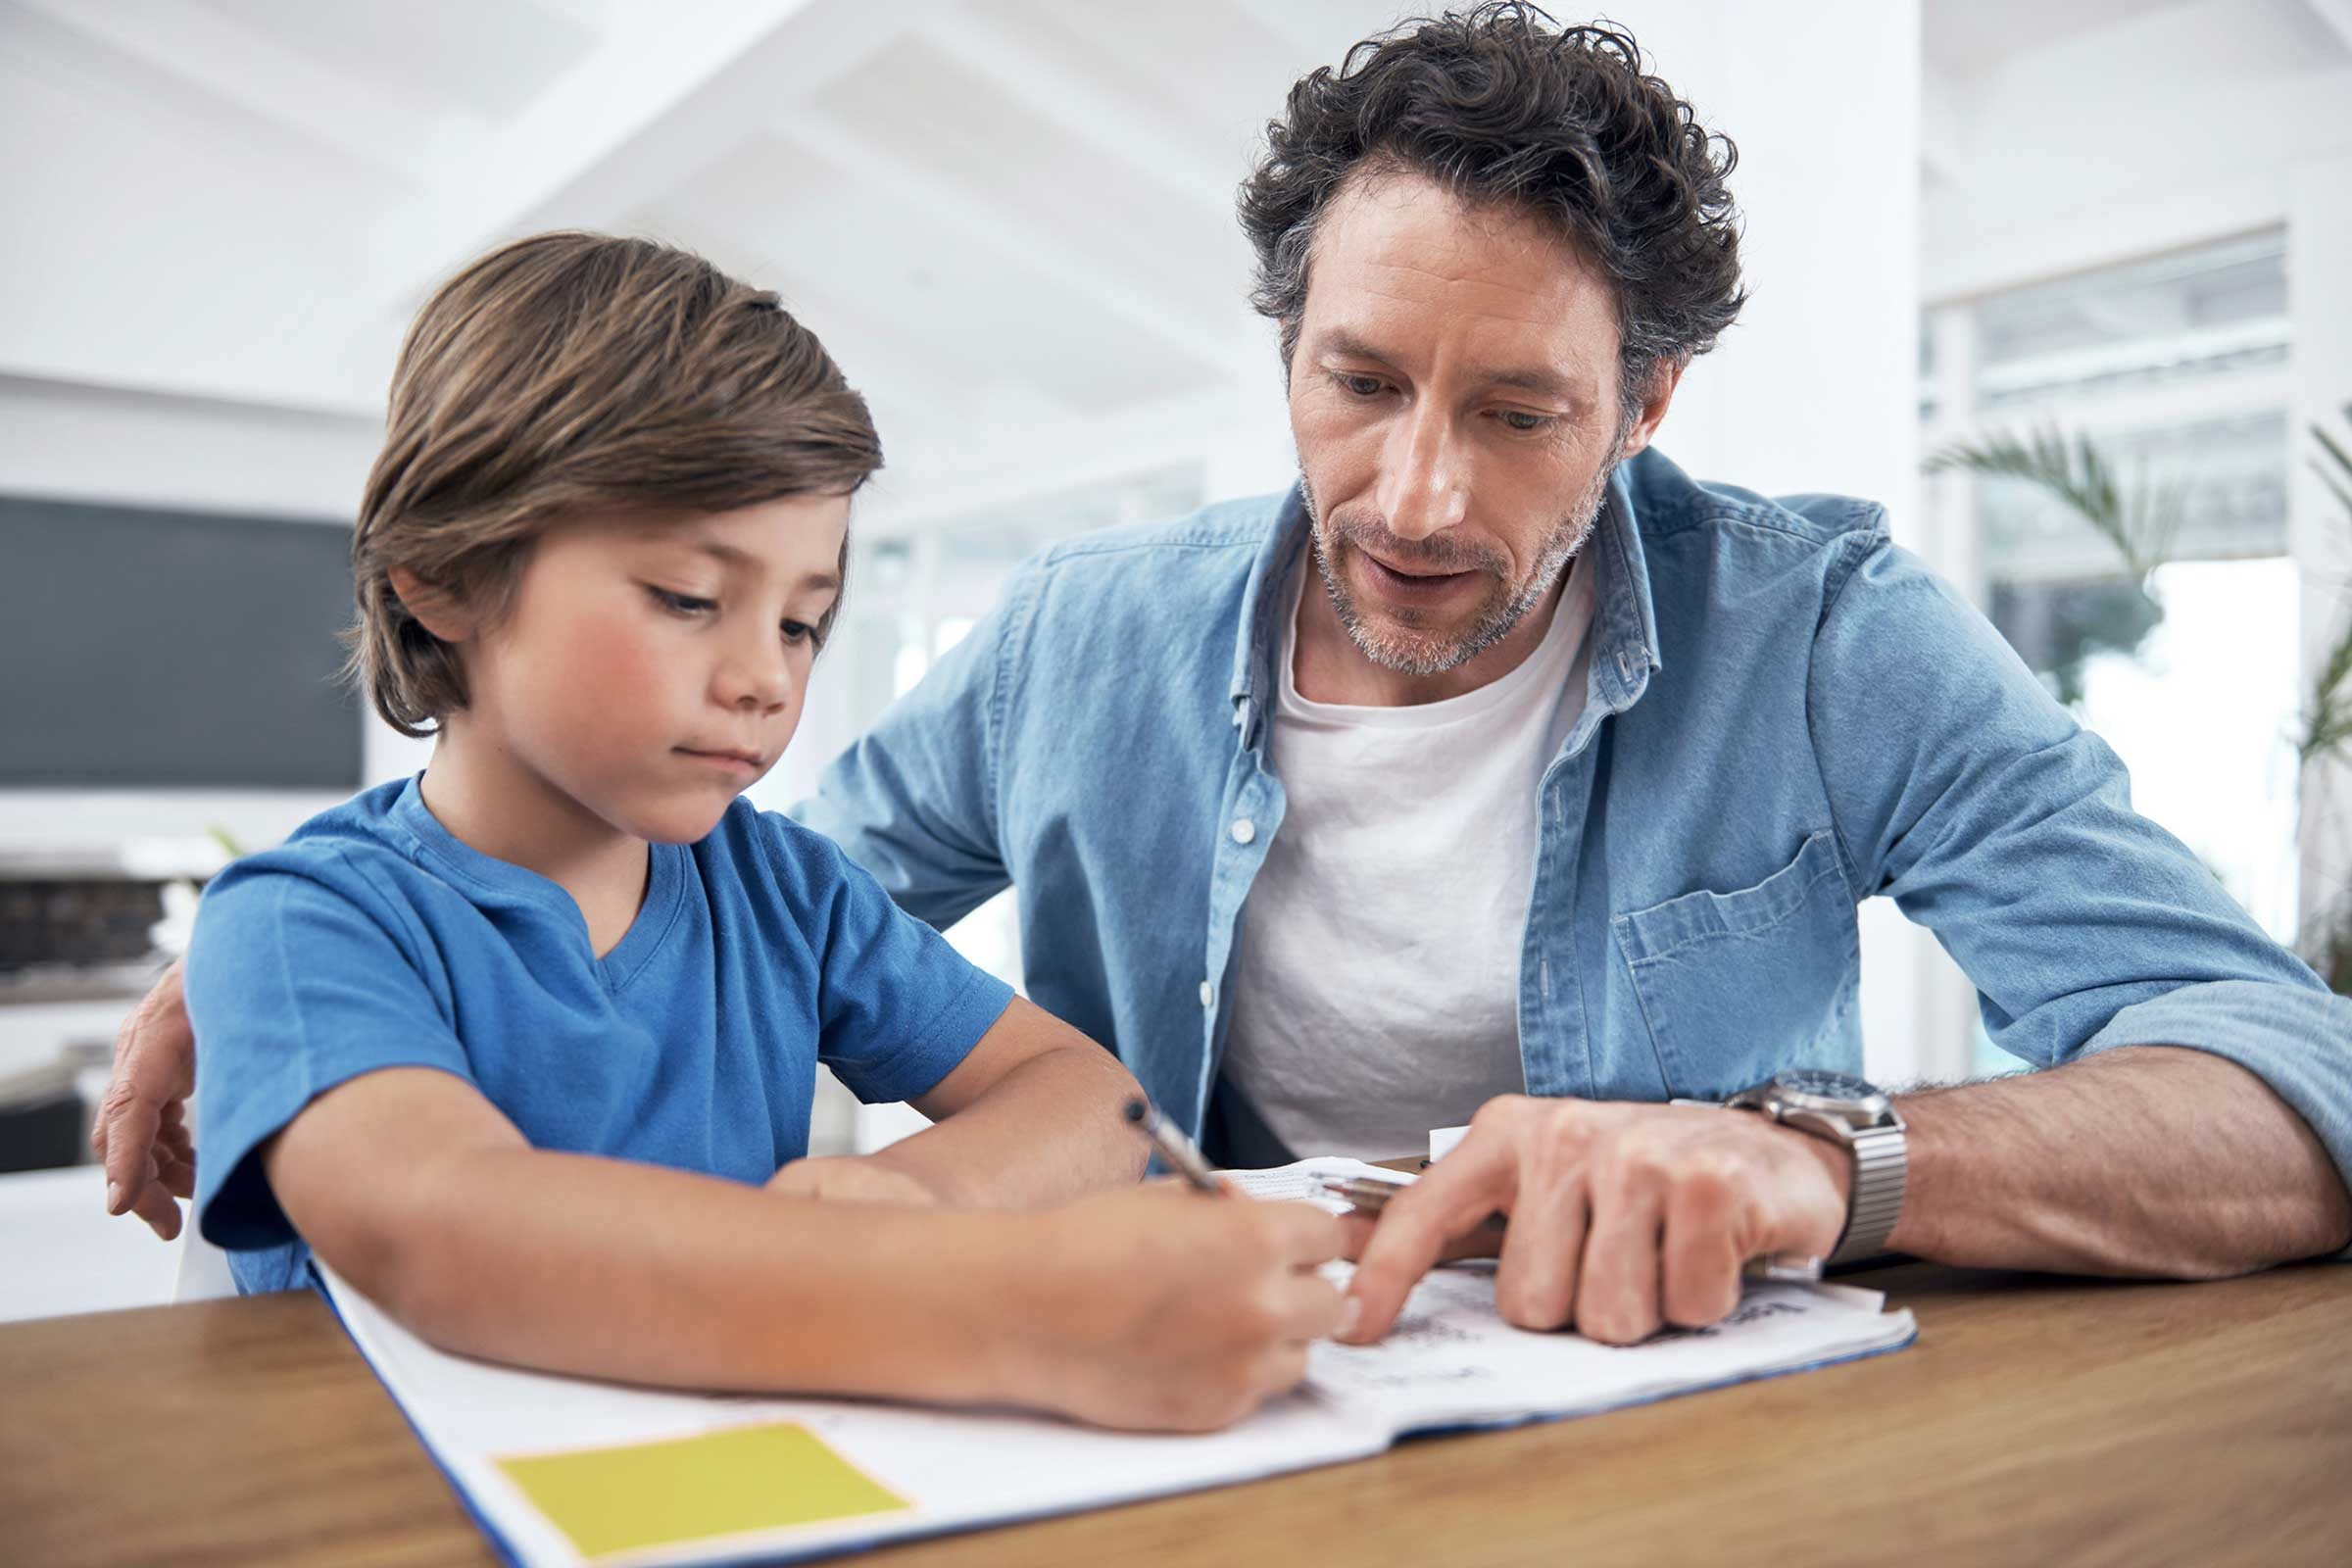 Could I hire someone to homeschool my child for me?